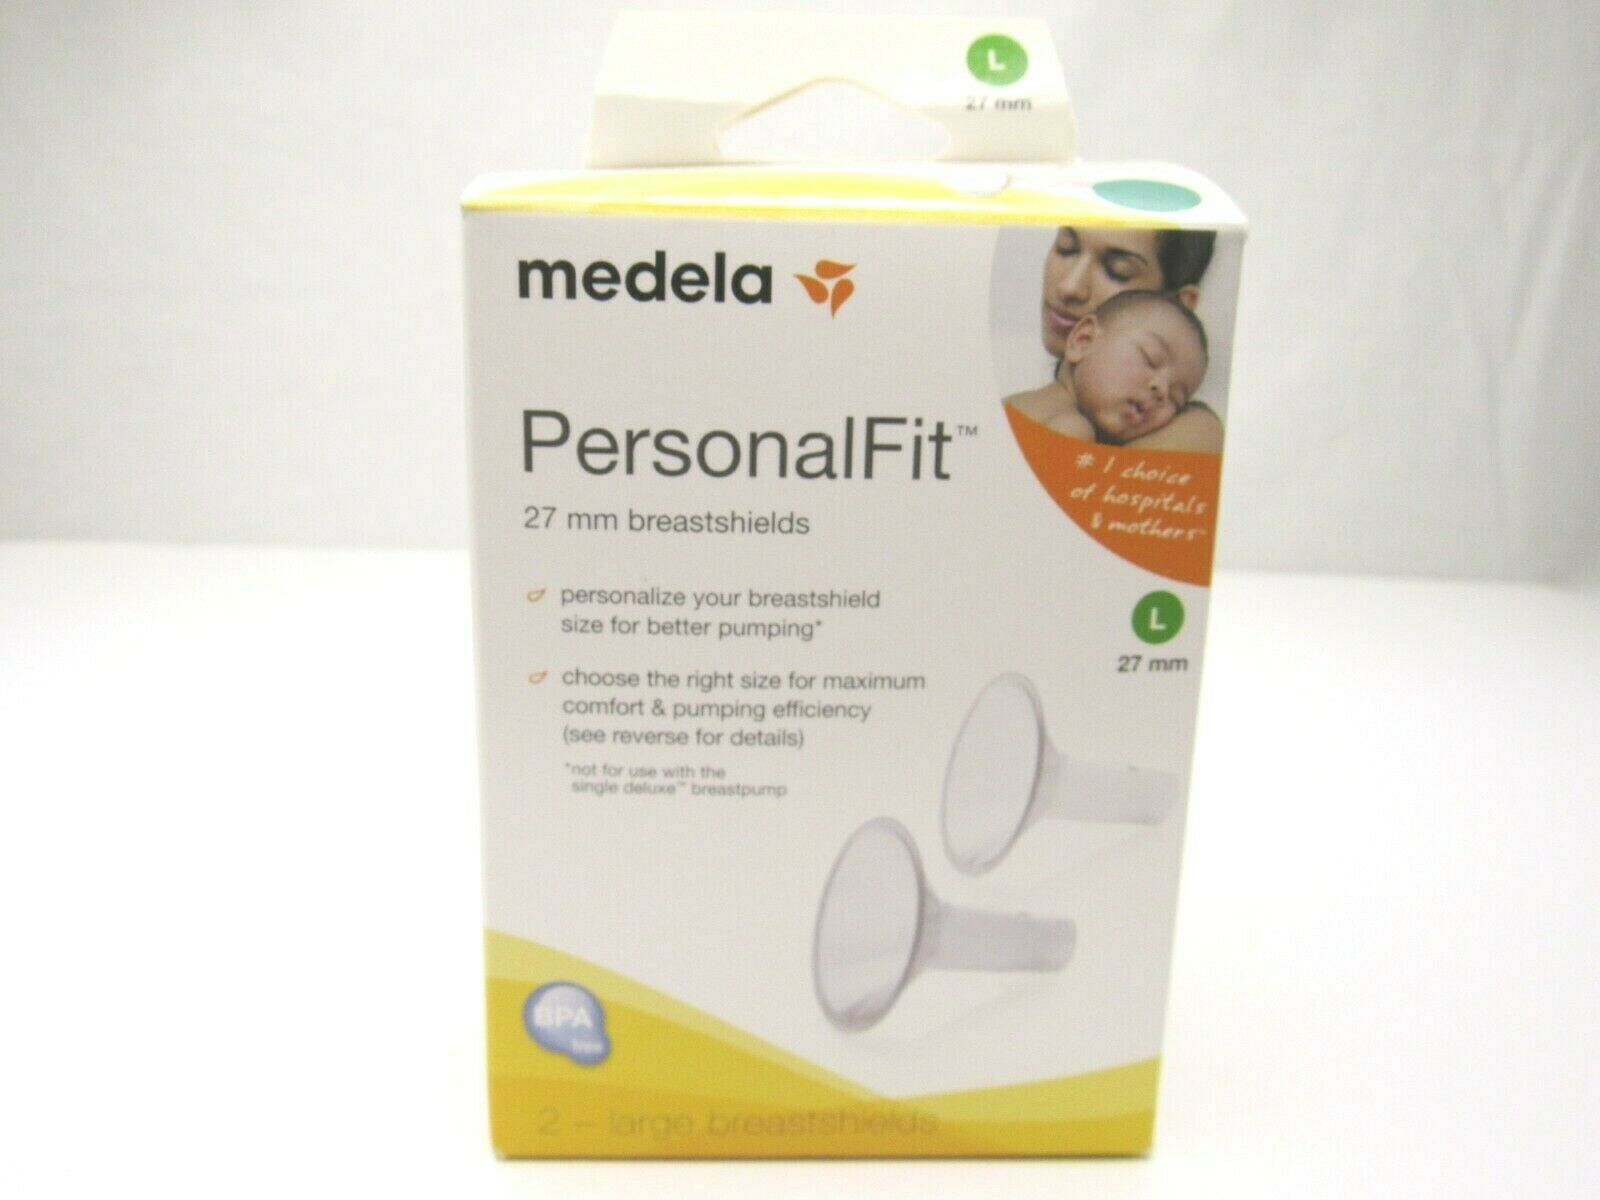 Primary image for Medela PersonalFit Breastshields 27 mm Large 2 Pack Replacement Better Pumping